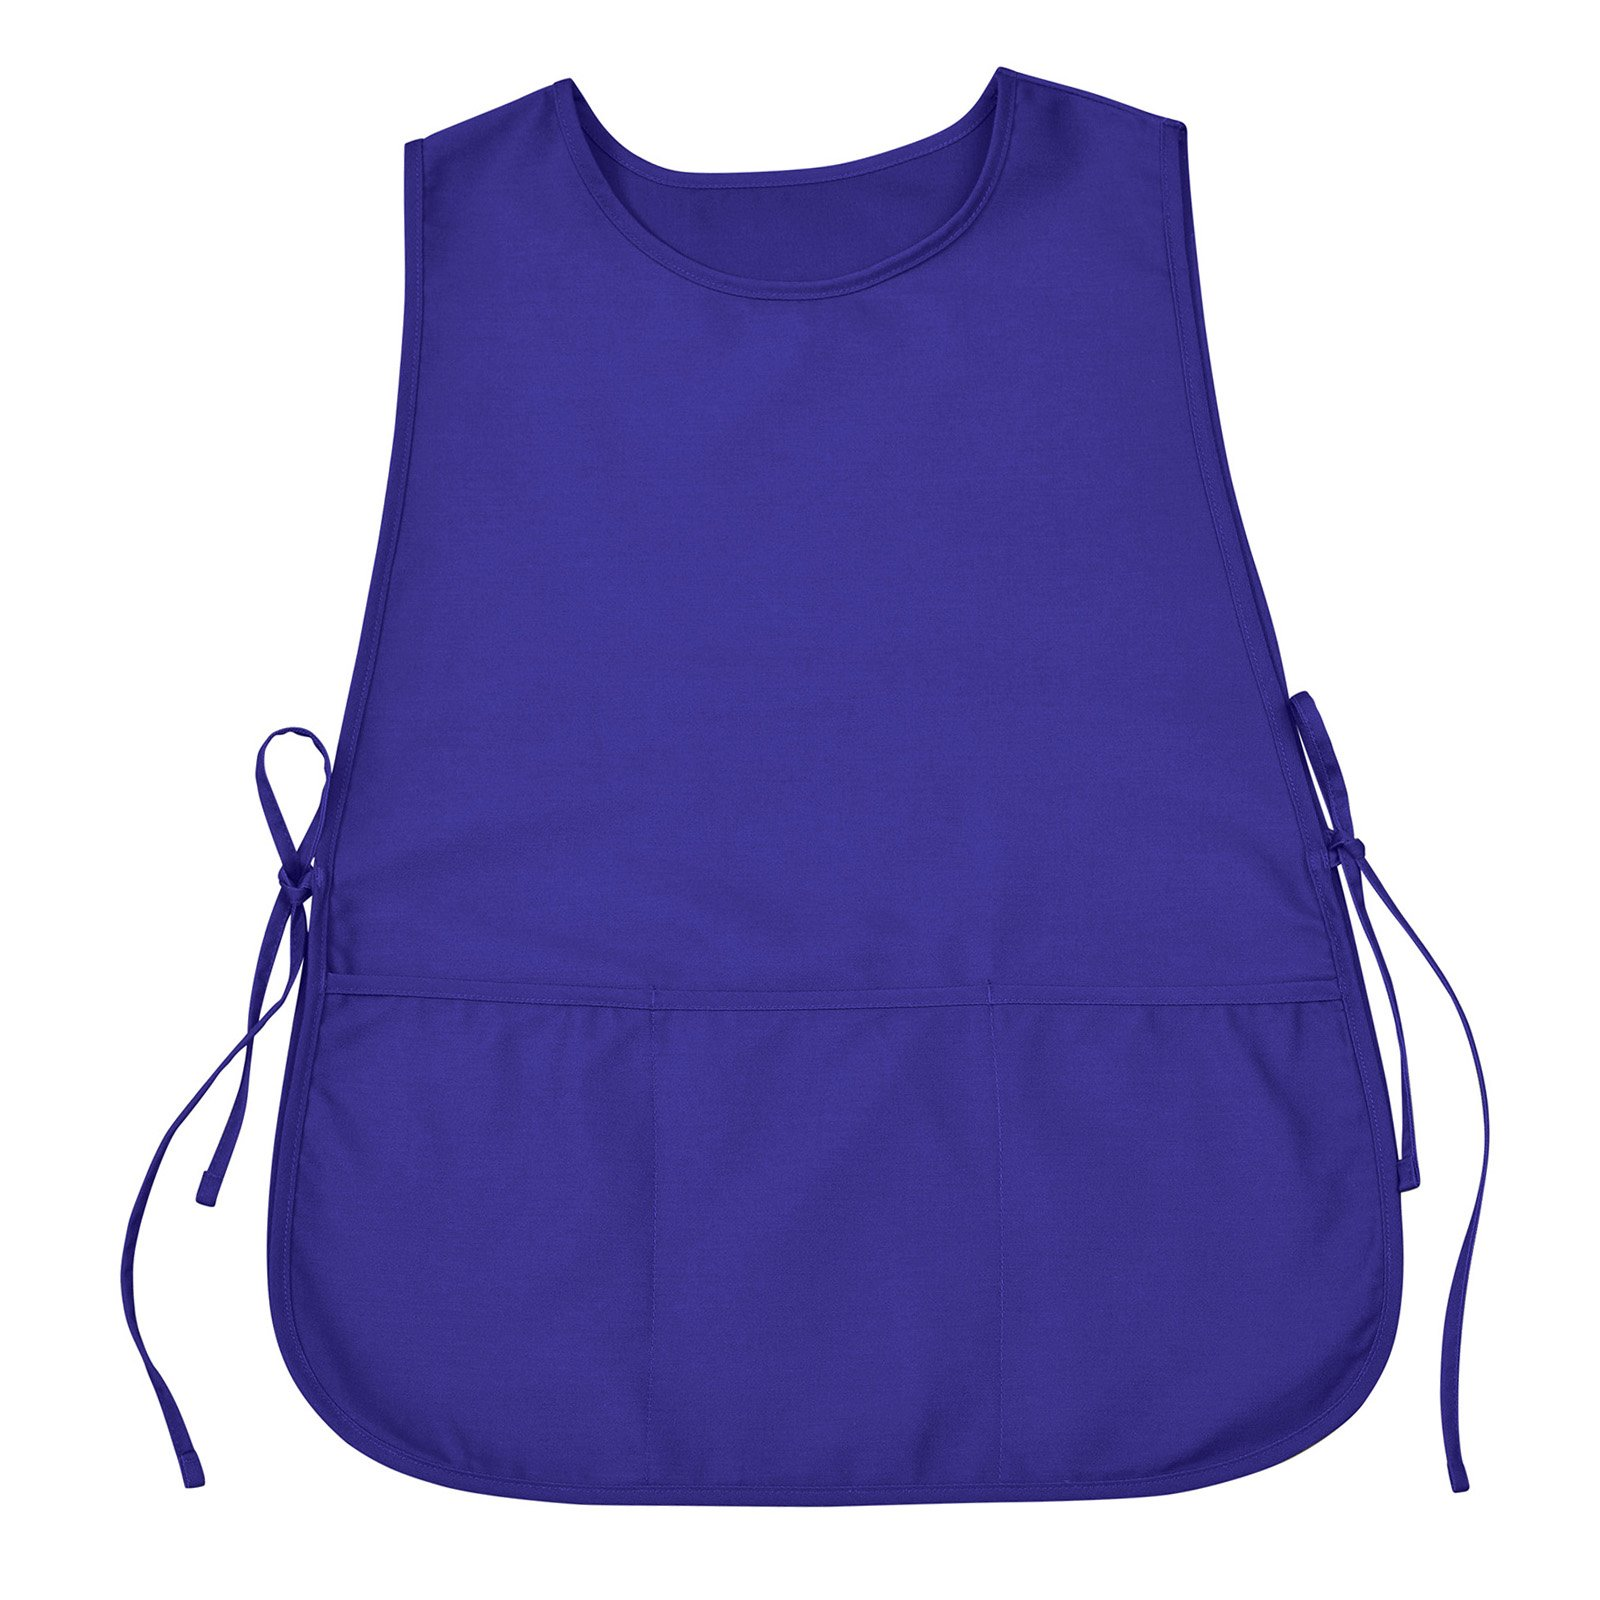 VEEYOO Chef Cobbler Apron with 3 pockets, Polyester Cotton, Art Smock Aprons for Unisex Adult Men Women, Royal Blue, Plus Size Large 23x32 inches by VEEYOO (Image #2)